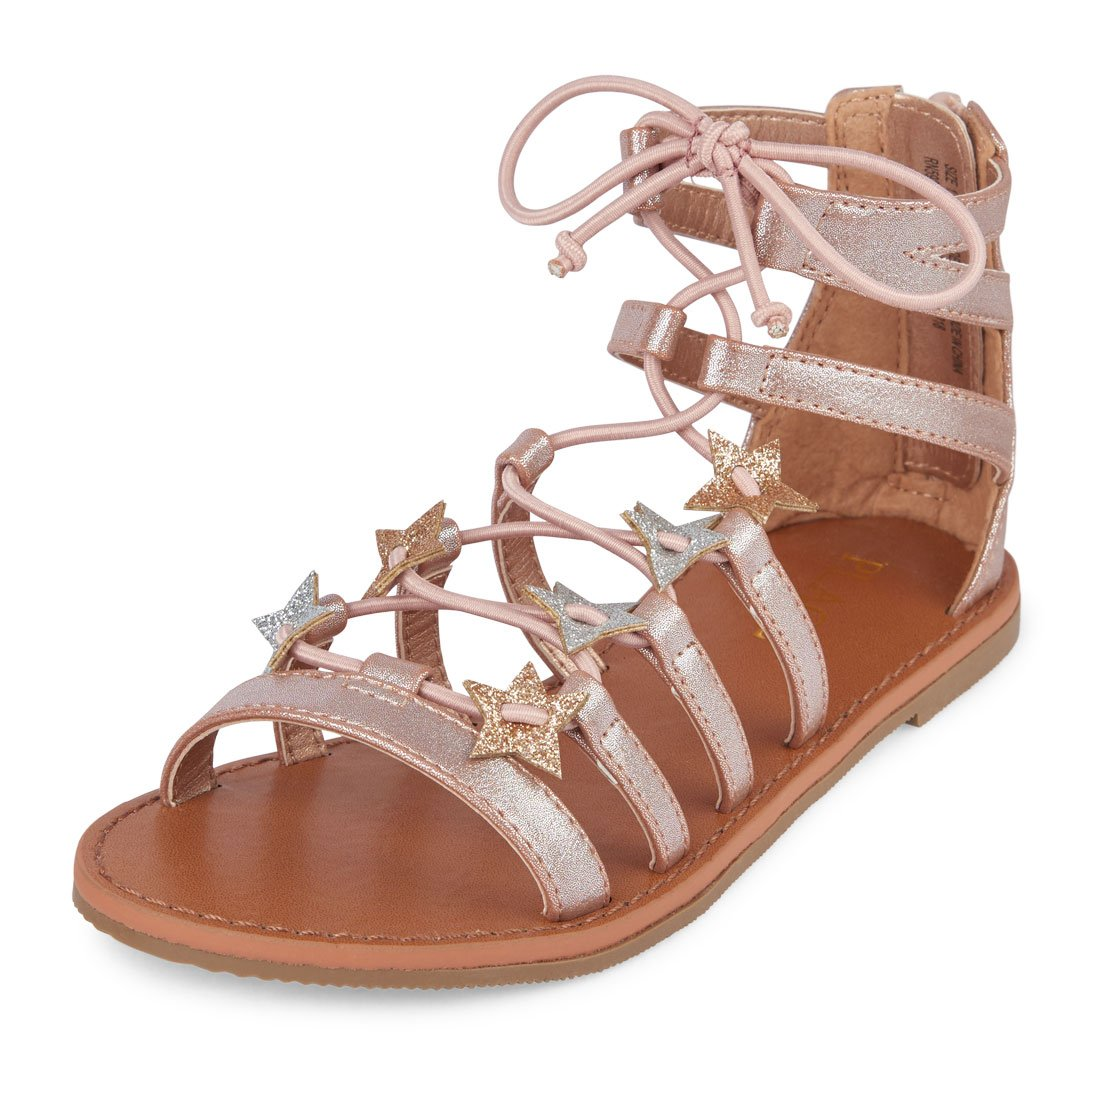 The Children's Place Girls' BG Star Candy GL Sandal, Rose Gold, Youth 2 Youth US Big Kid